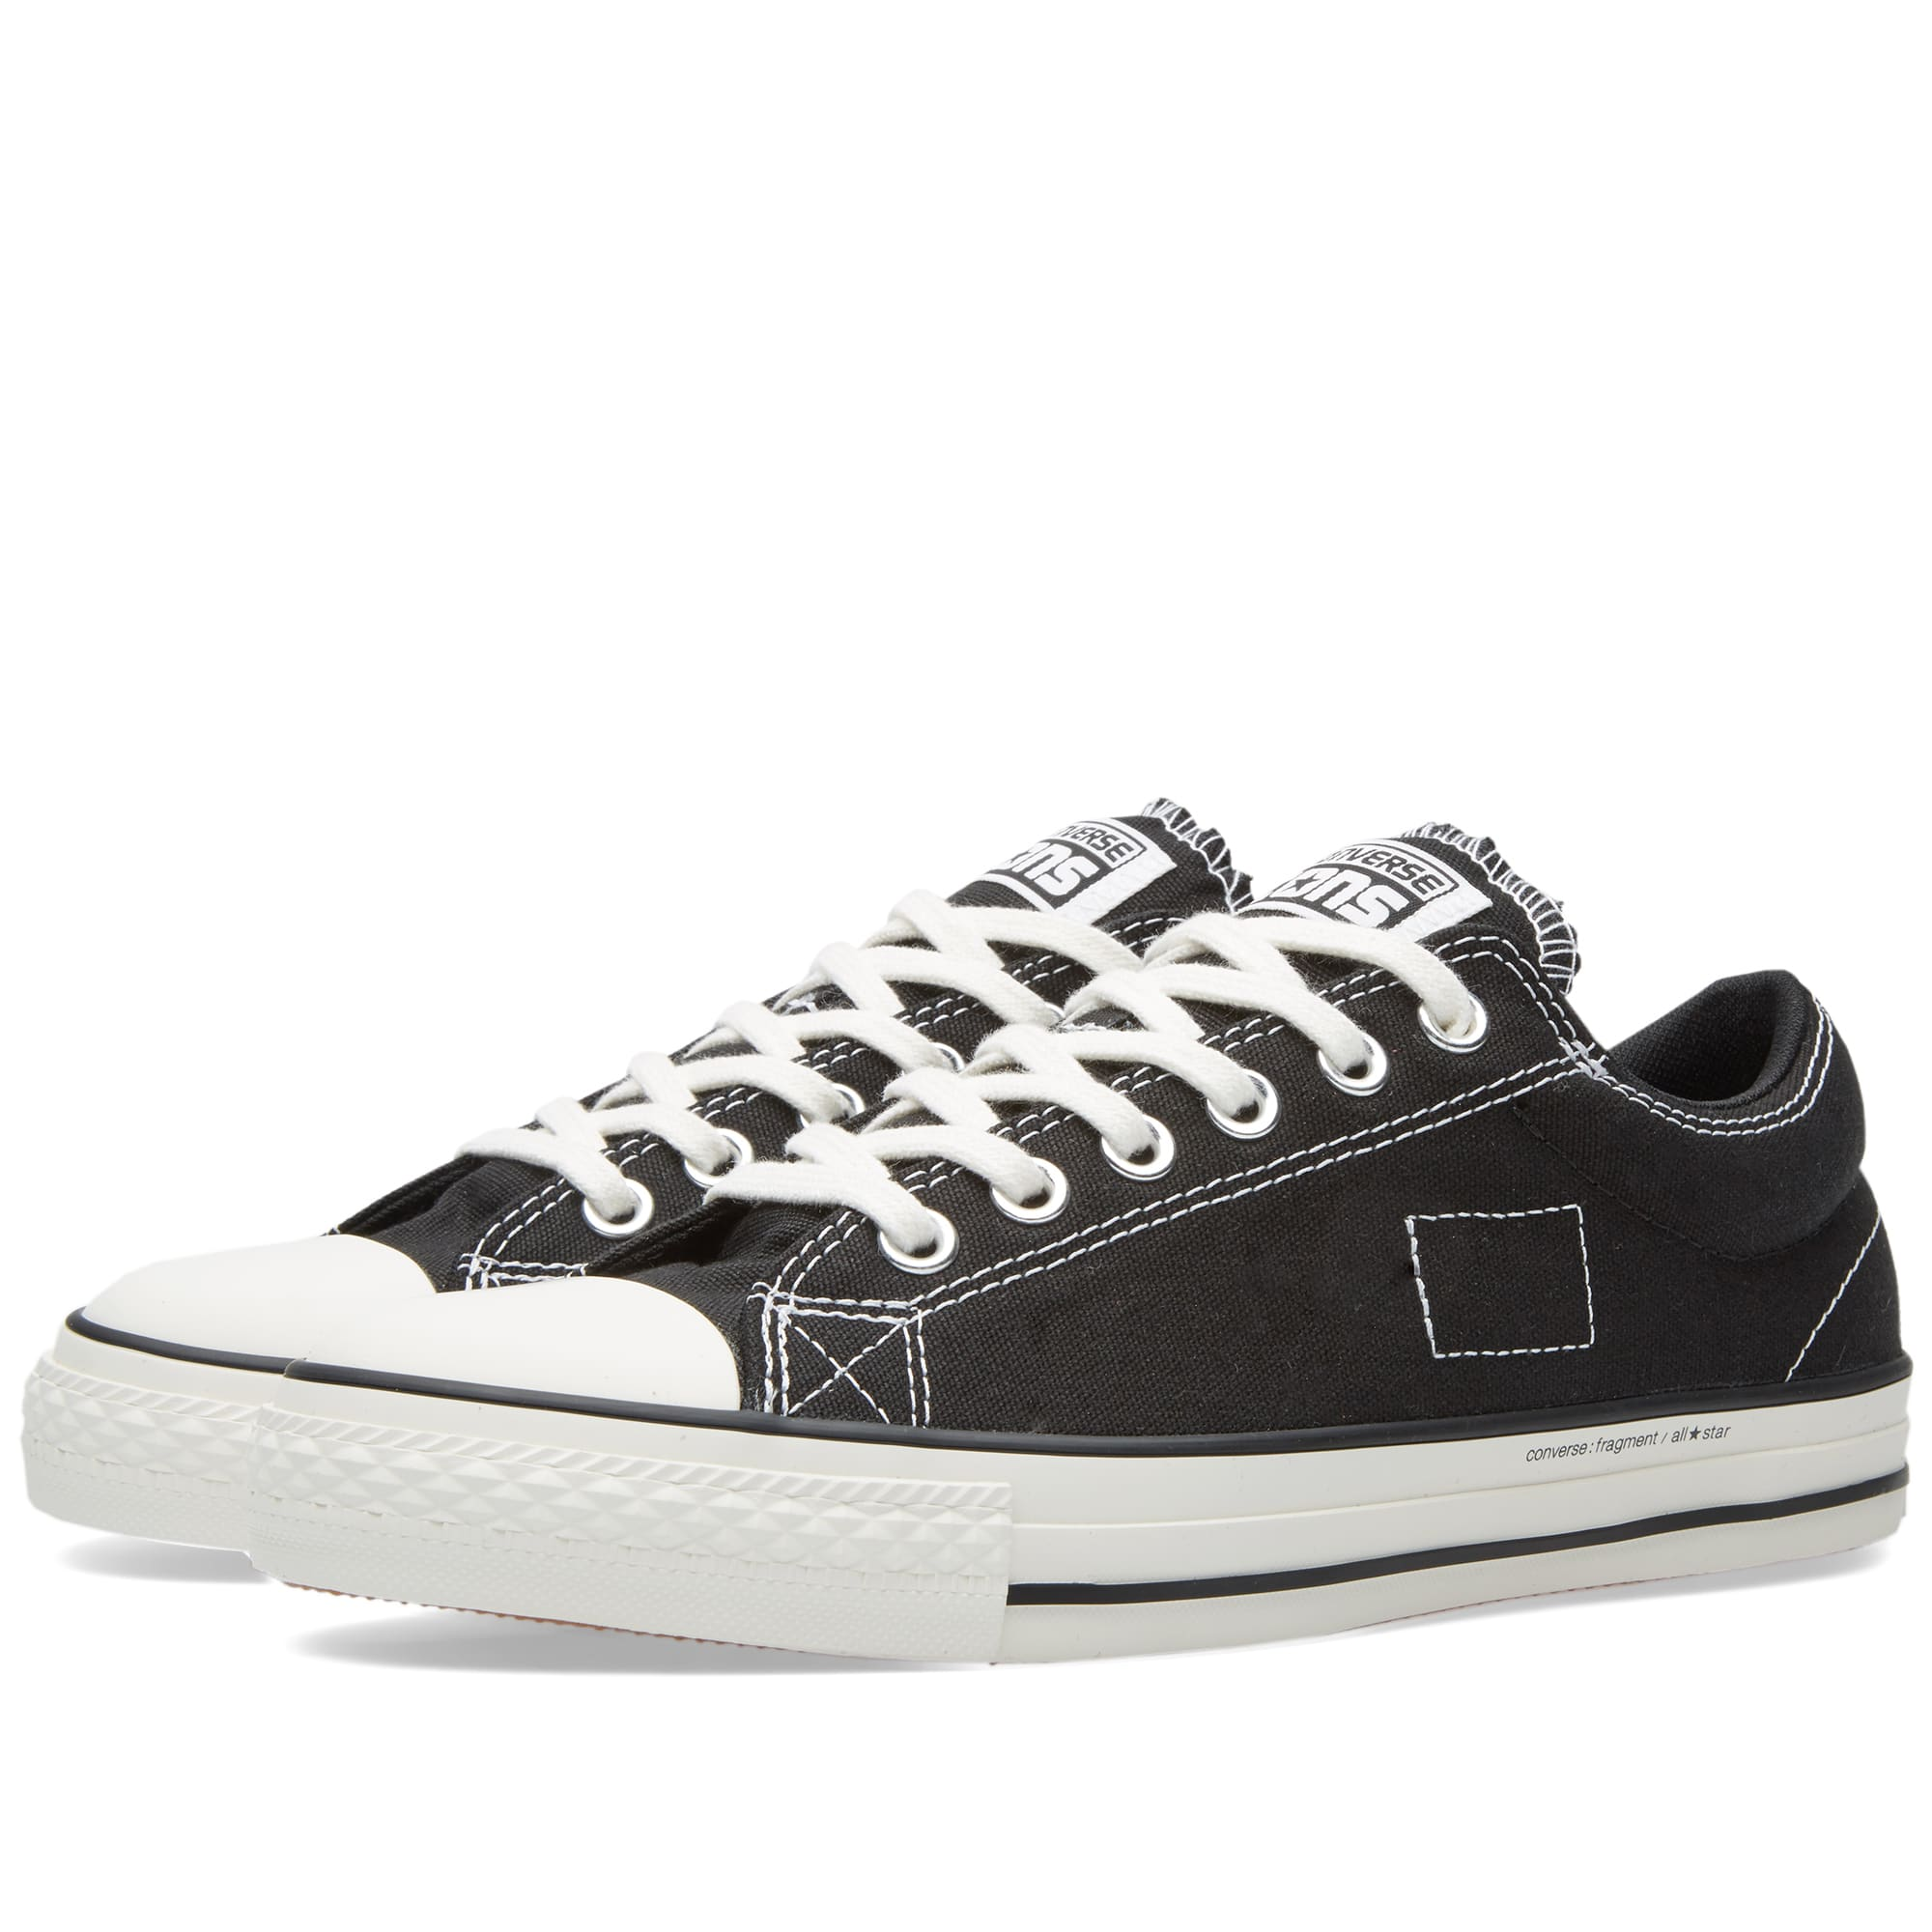 Converse CONS x Fragment Design CTS Ox